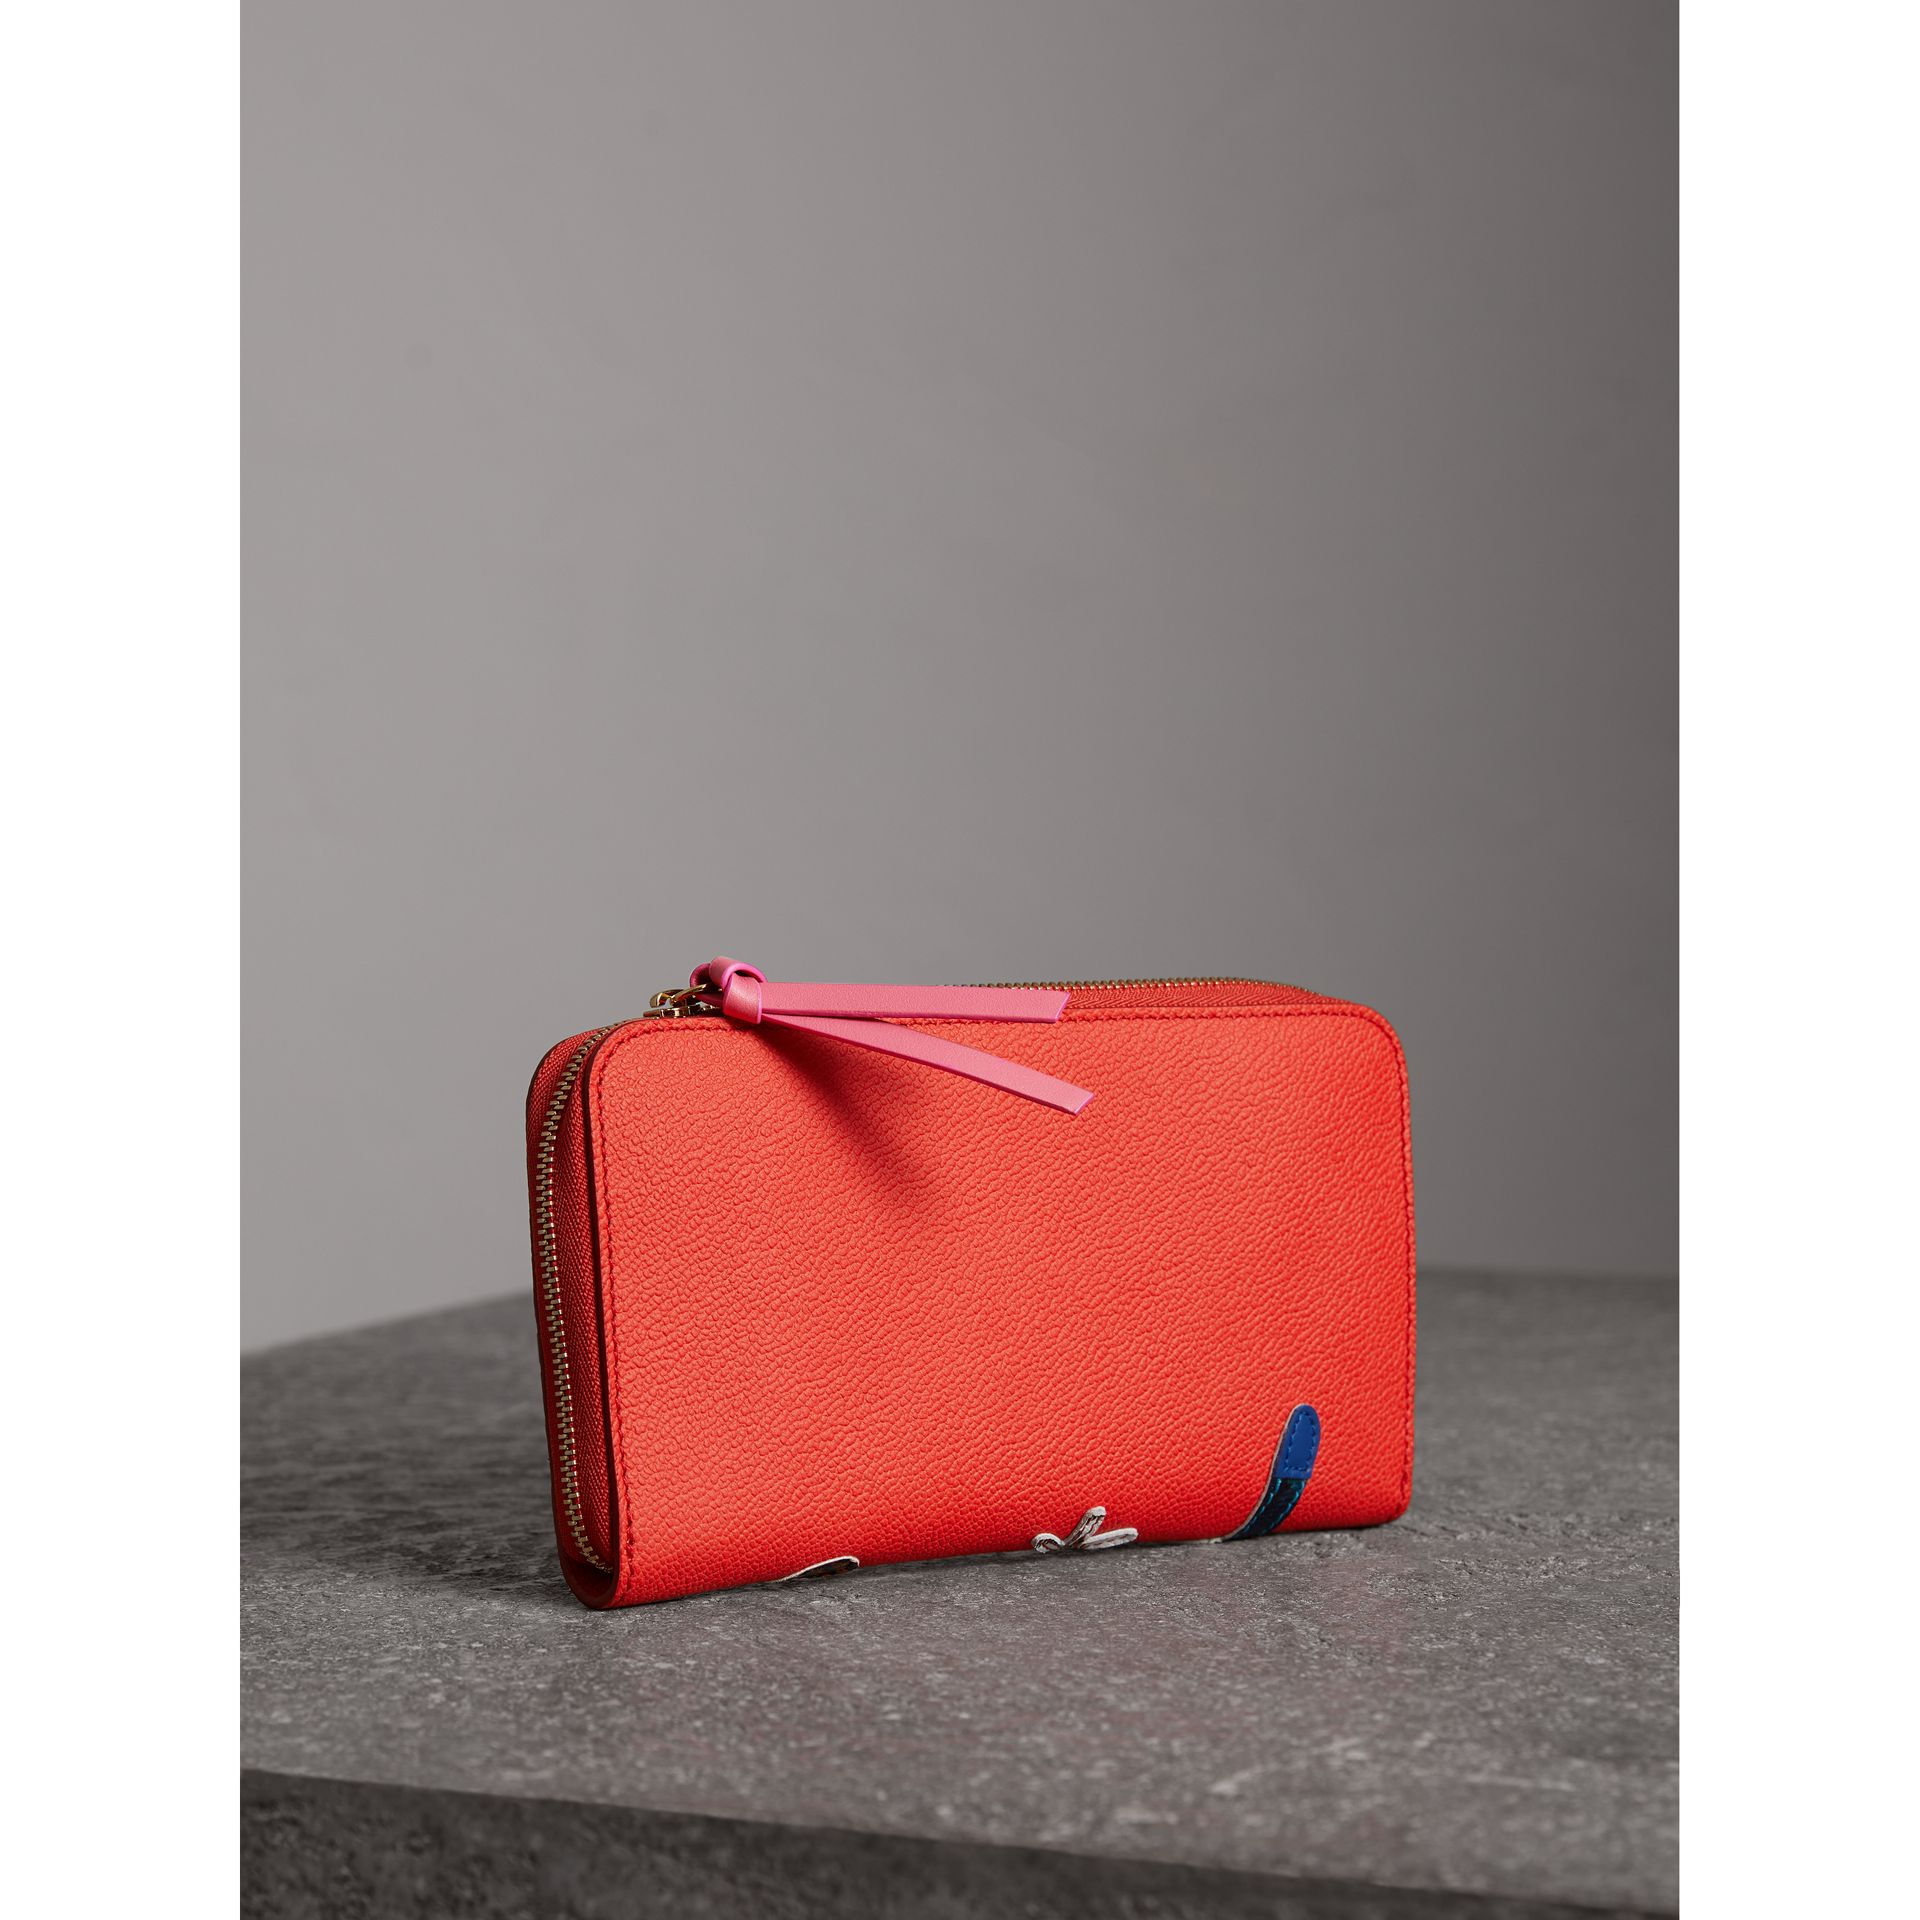 Creature Appliqué Check Leather Ziparound Wallet in Orange Red - Women | Burberry - gallery image 3